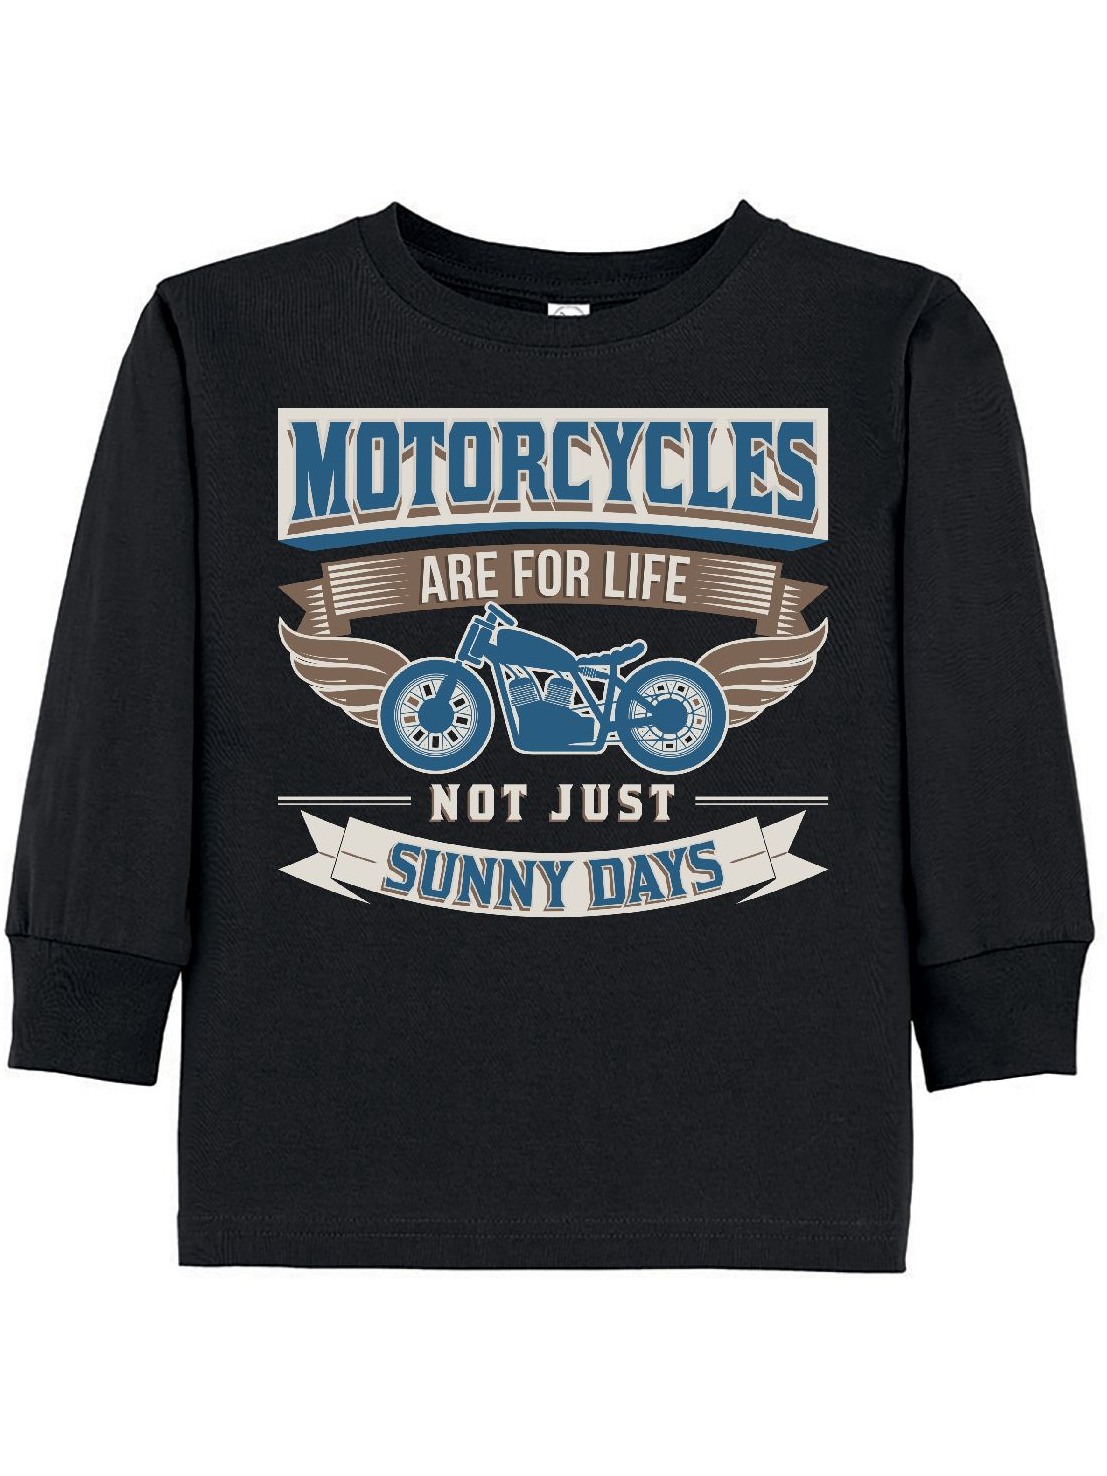 Motorcycles Are For Life Biker Gift Toddler Long Sleeve T-Shirt